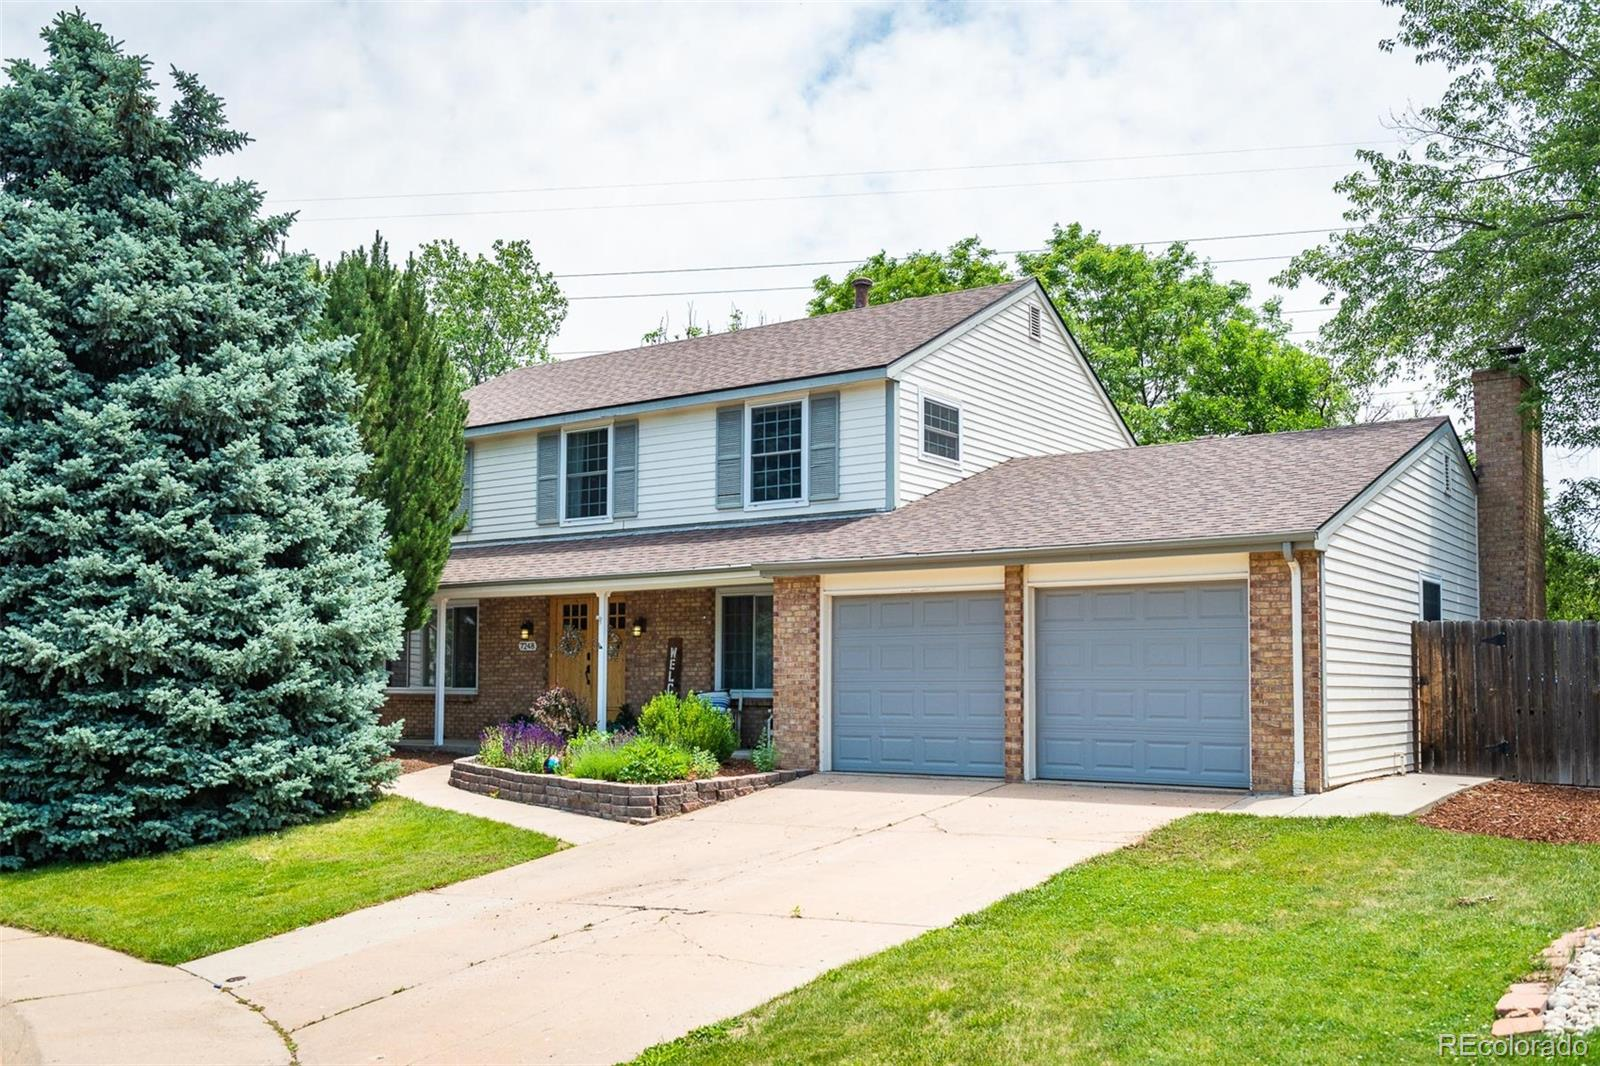 7248 S Hudson Court Property Photo - Centennial, CO real estate listing